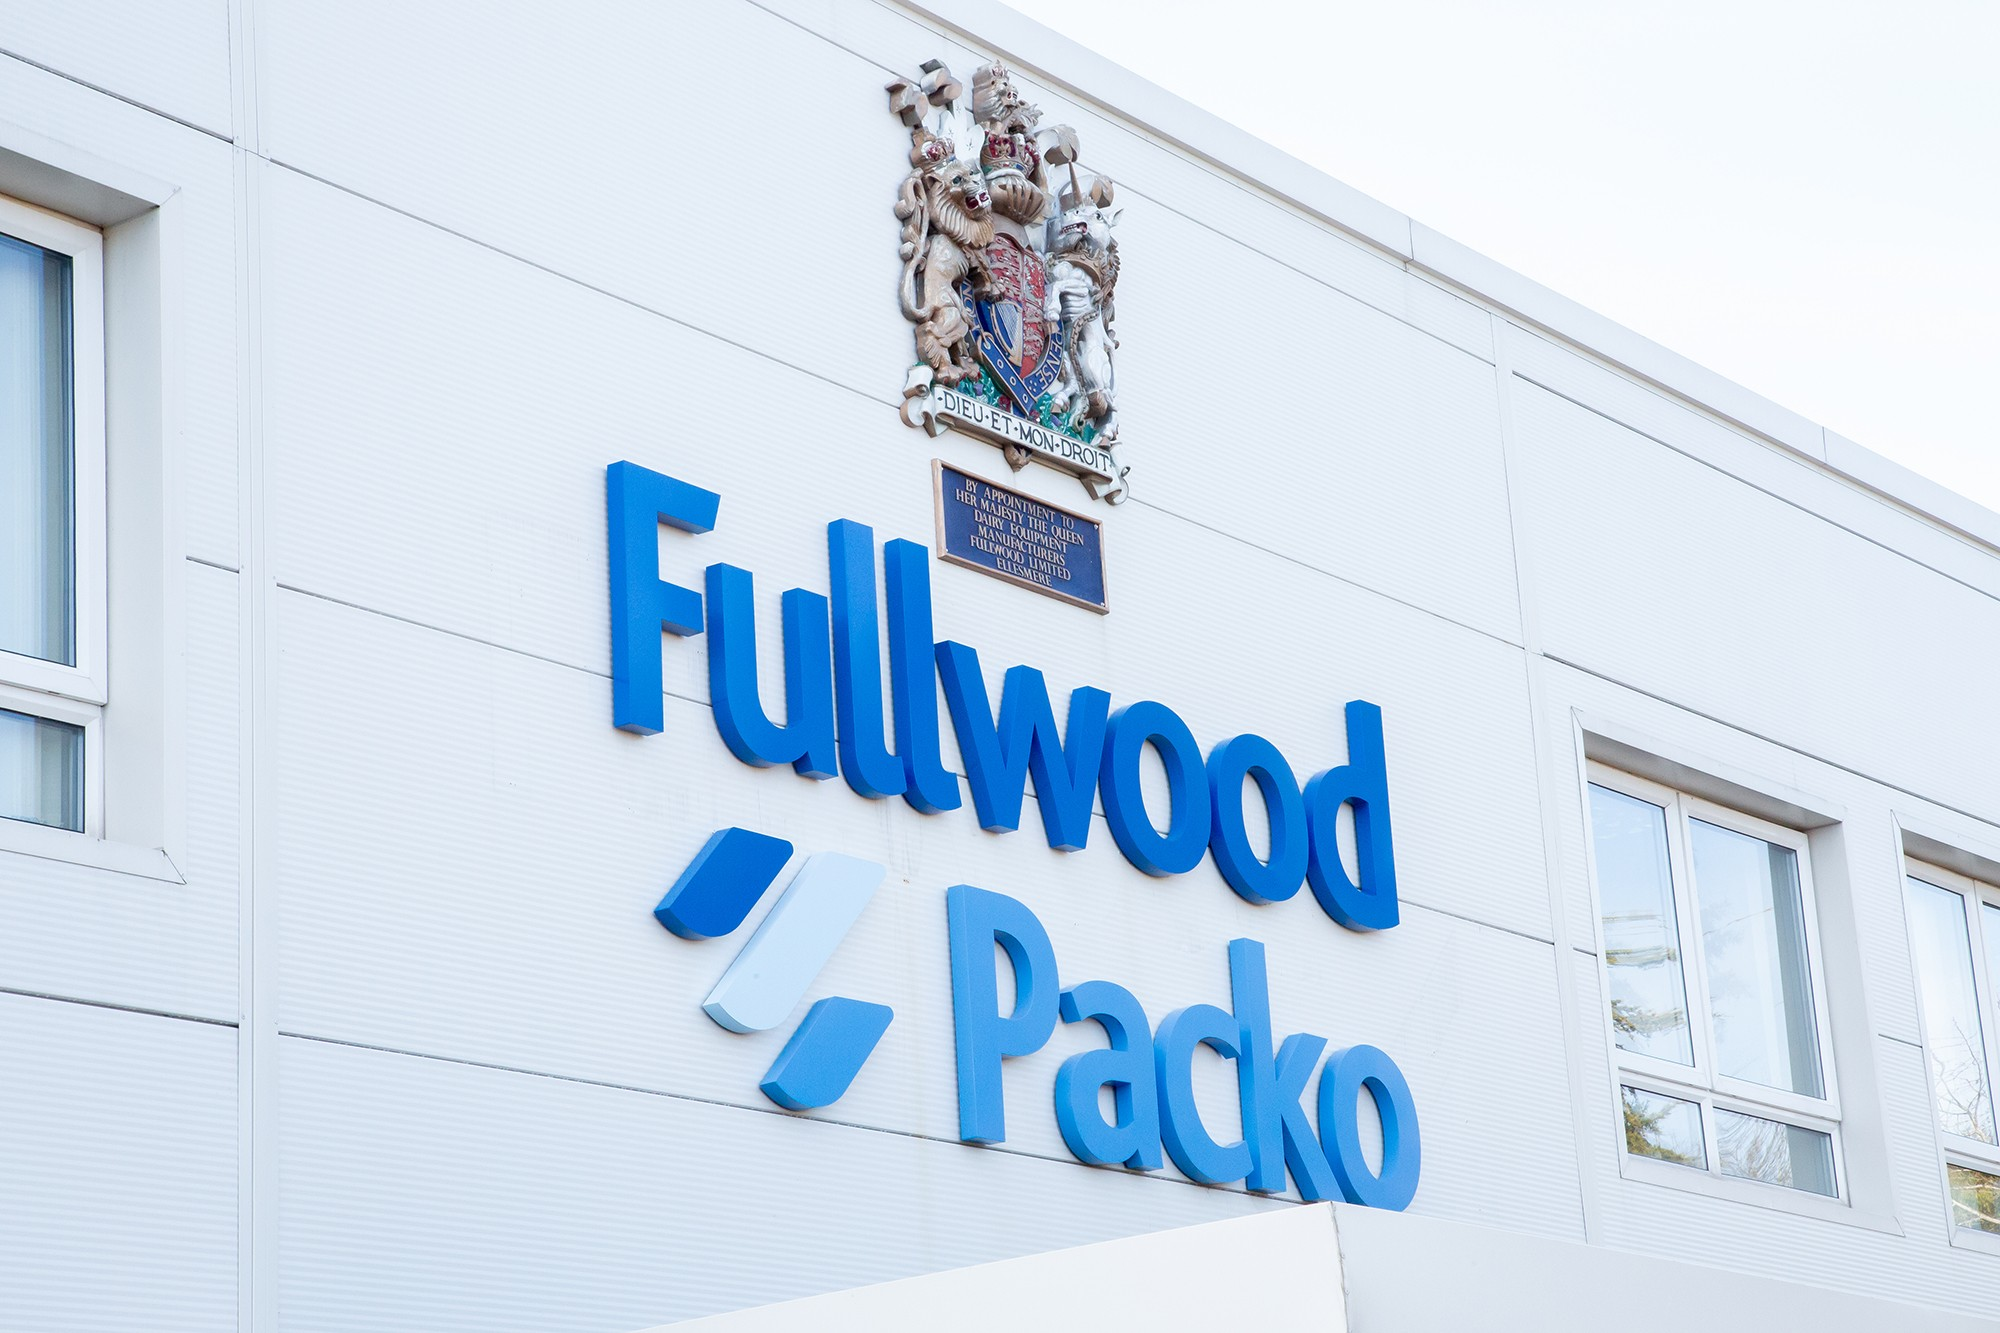 Fullwood Packo » ppfullwood 138 » PP Control & Automation